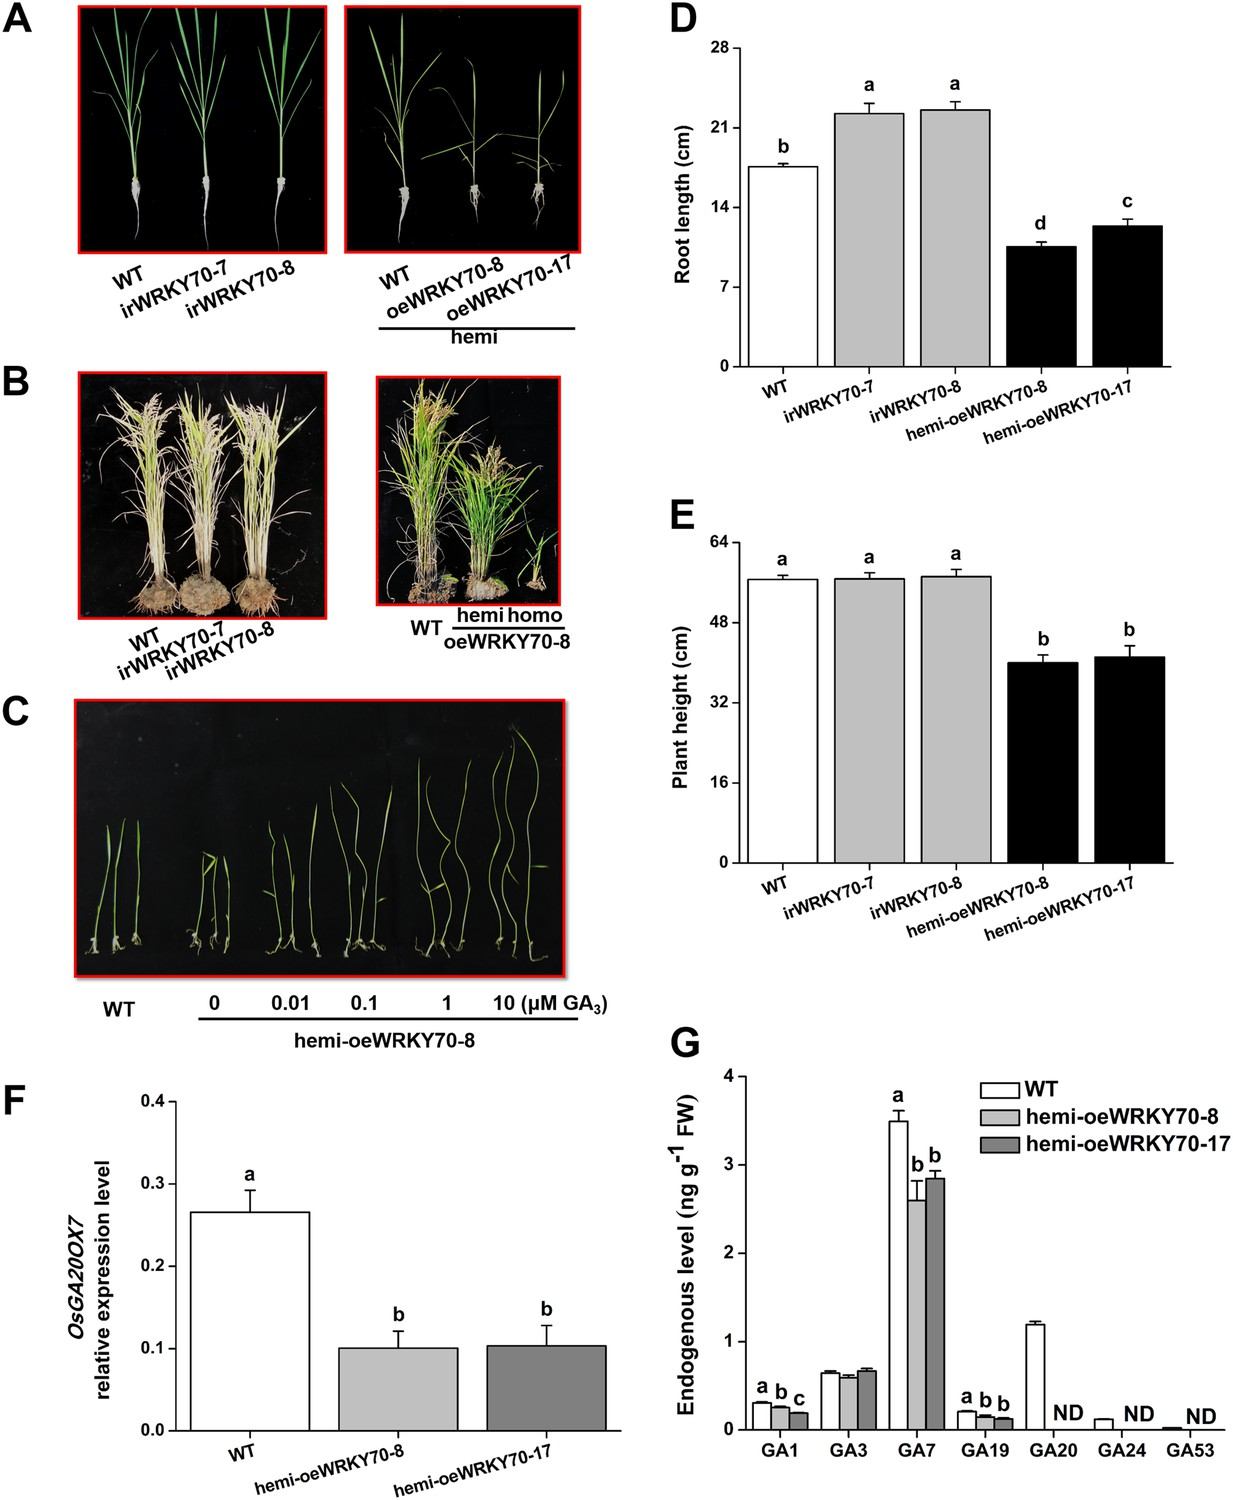 hight resolution of altering oswrky70 expression affects ga levels and plant growth